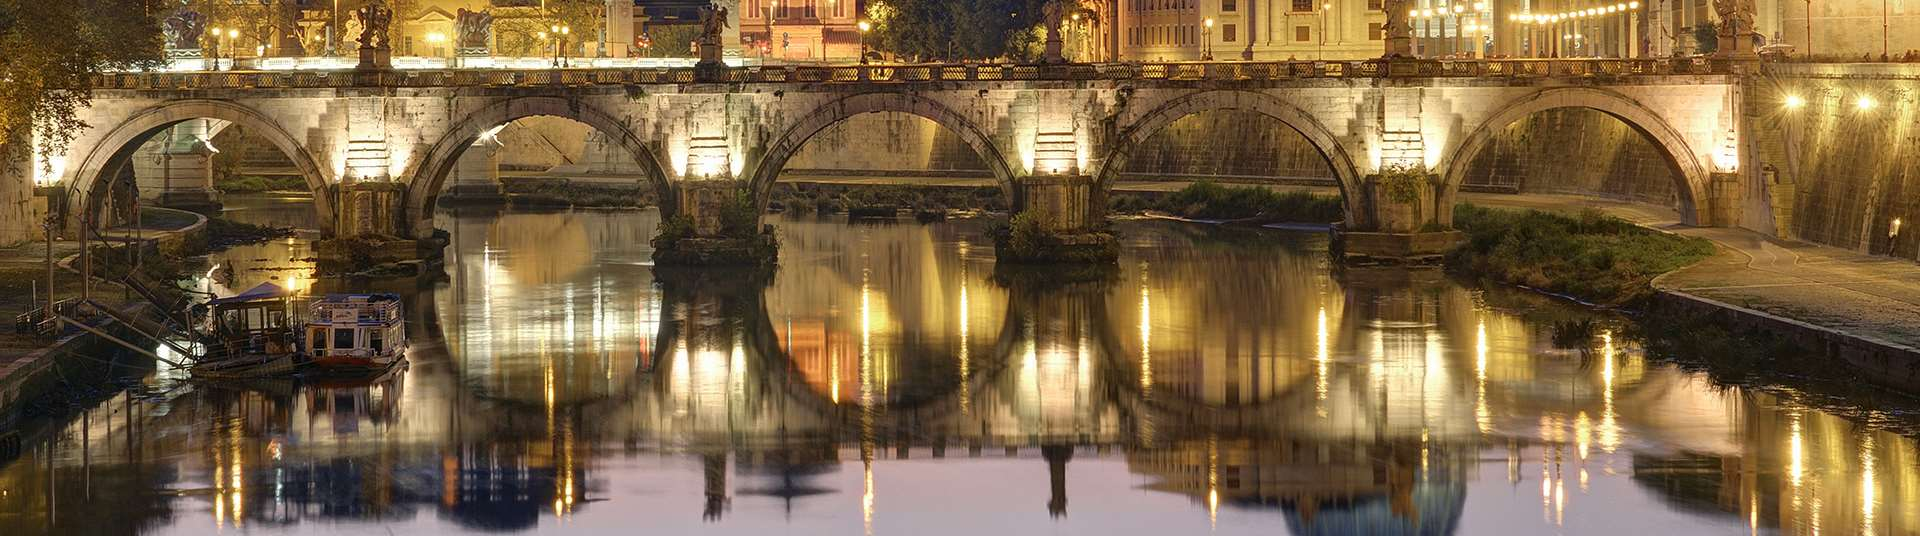 VISIT ROME, THE ETERNAL CITY The Eternal City, with its ruined but still imposing monuments, through the imperial, medieval, Renaissance and Baroque periods and beyond, has undergone many